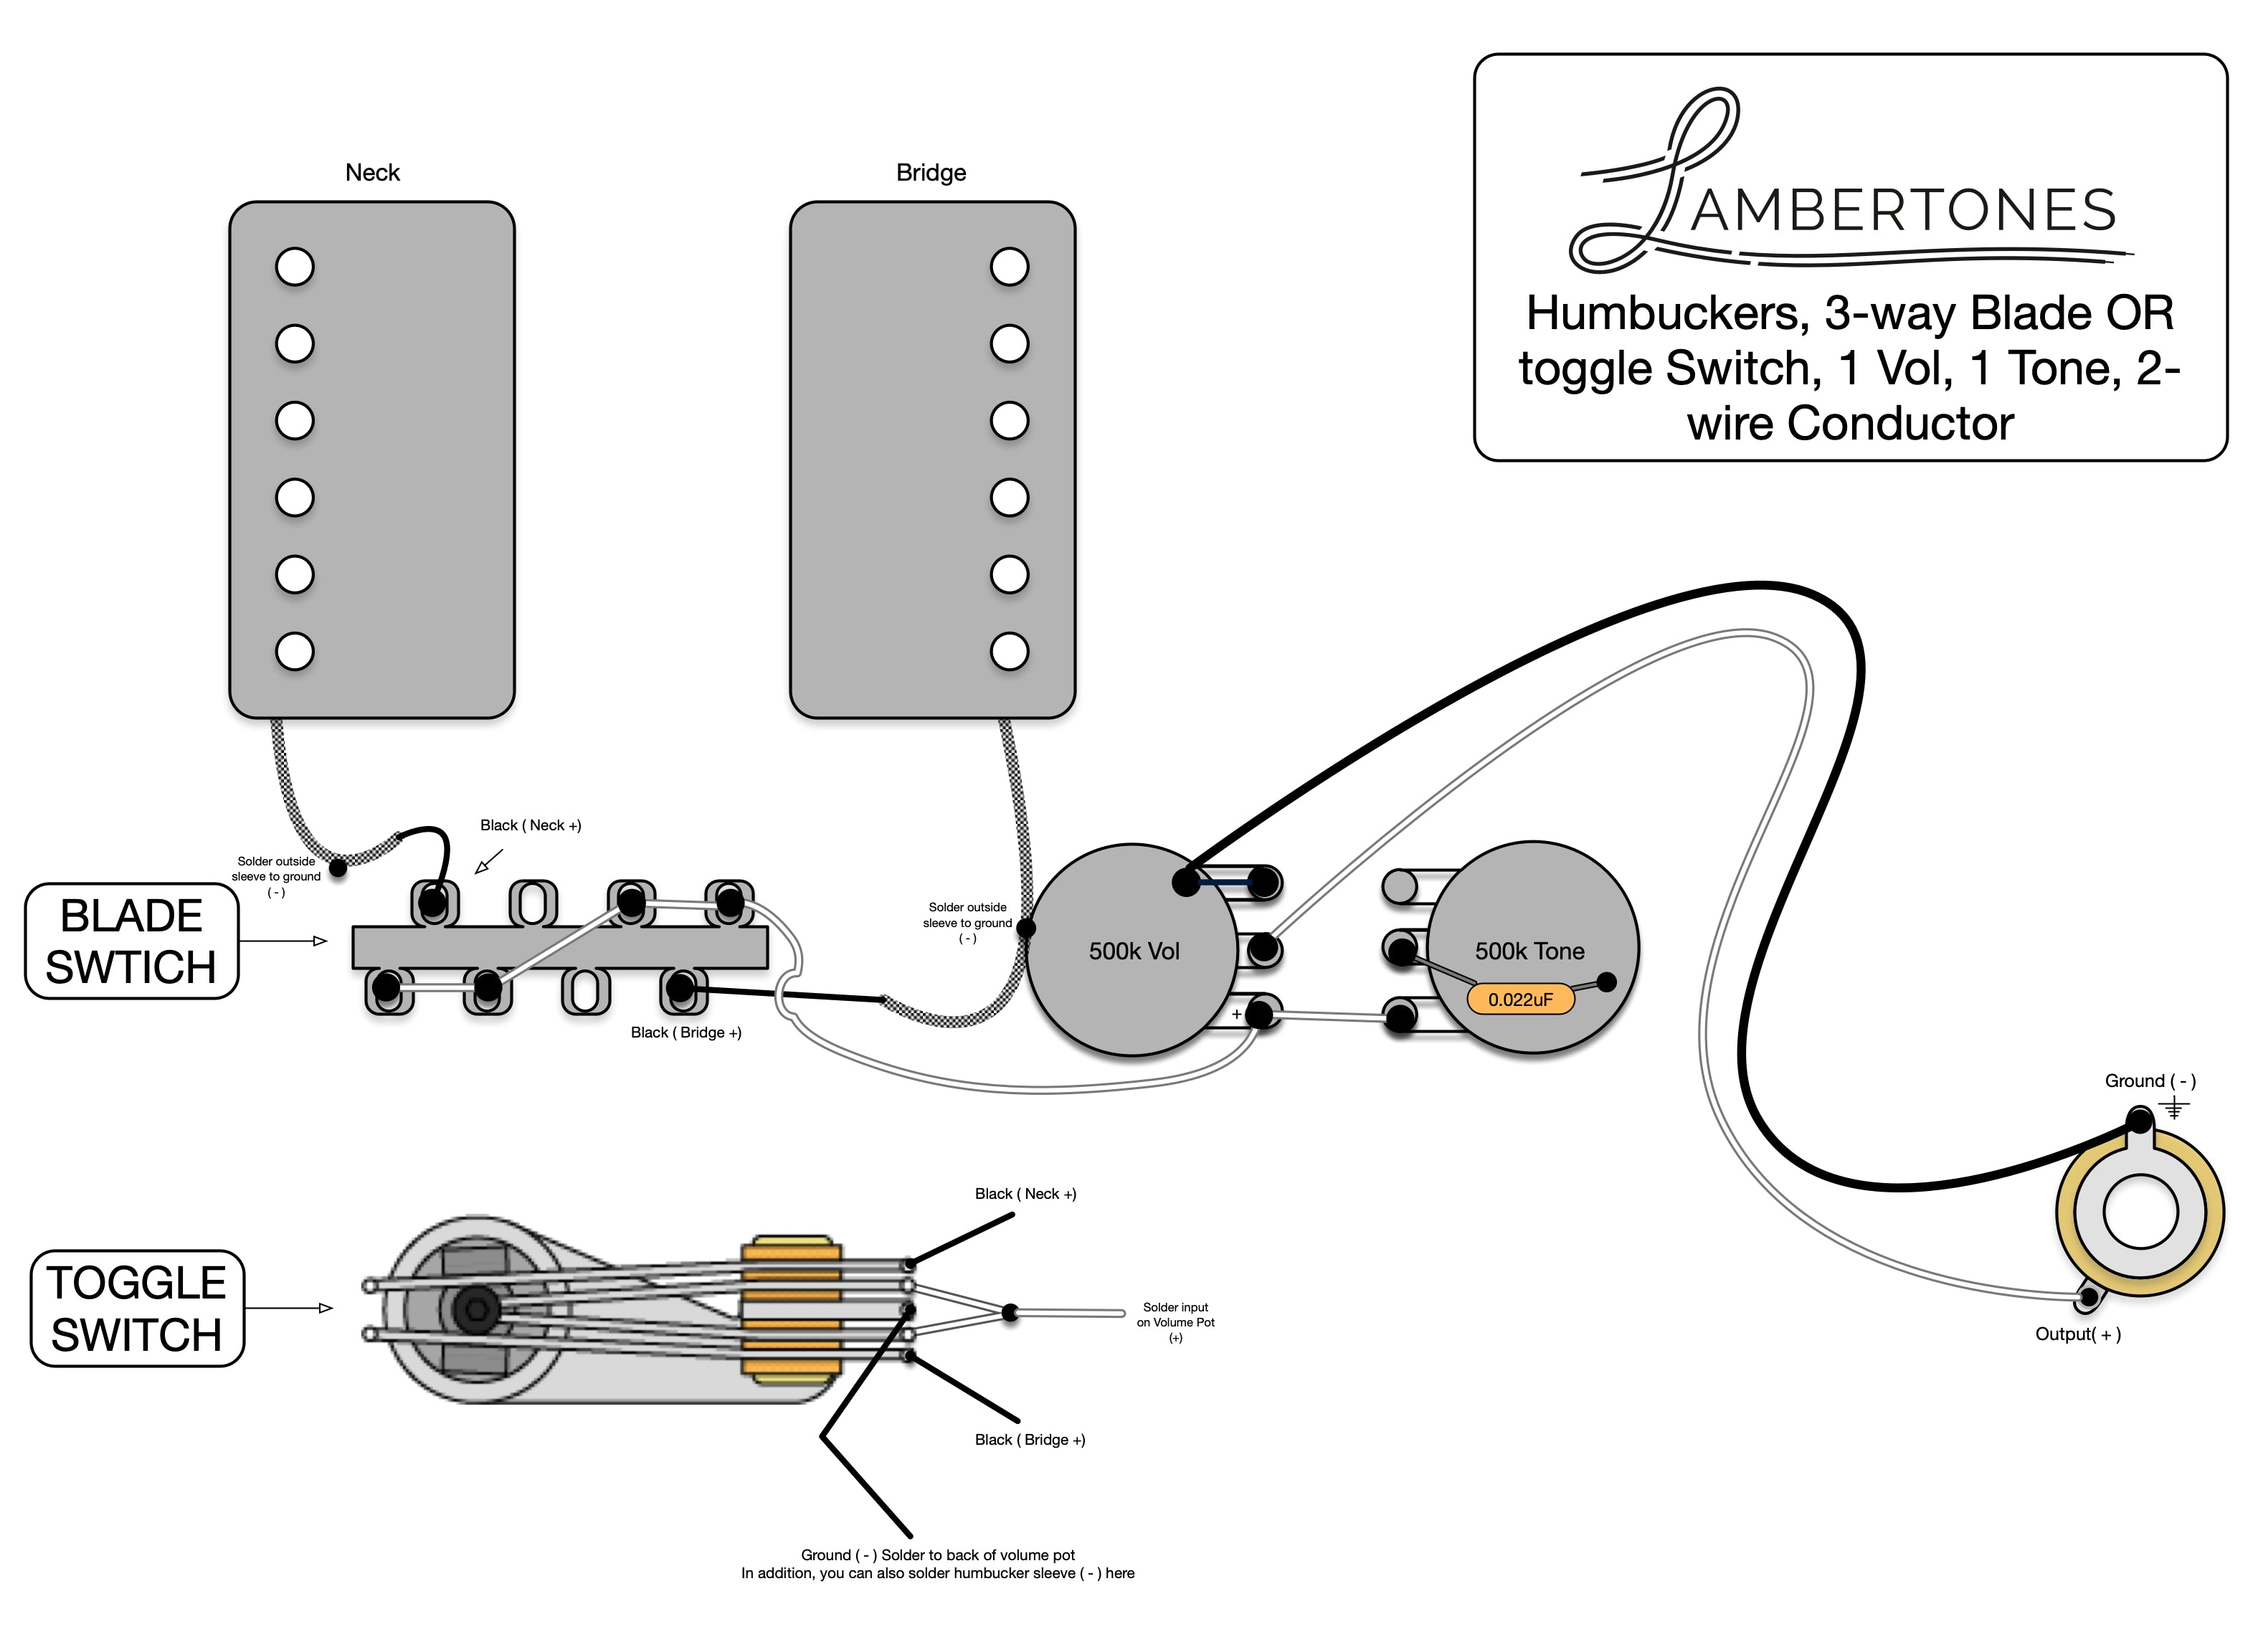 Wiring Diagrams - Humbucker – LAMBERTONES, LLC | Two Humbucker W 1 Volume And 2 Tone 5 Way Switch Wiring Diagram |  | LAMBERTONES, LLC